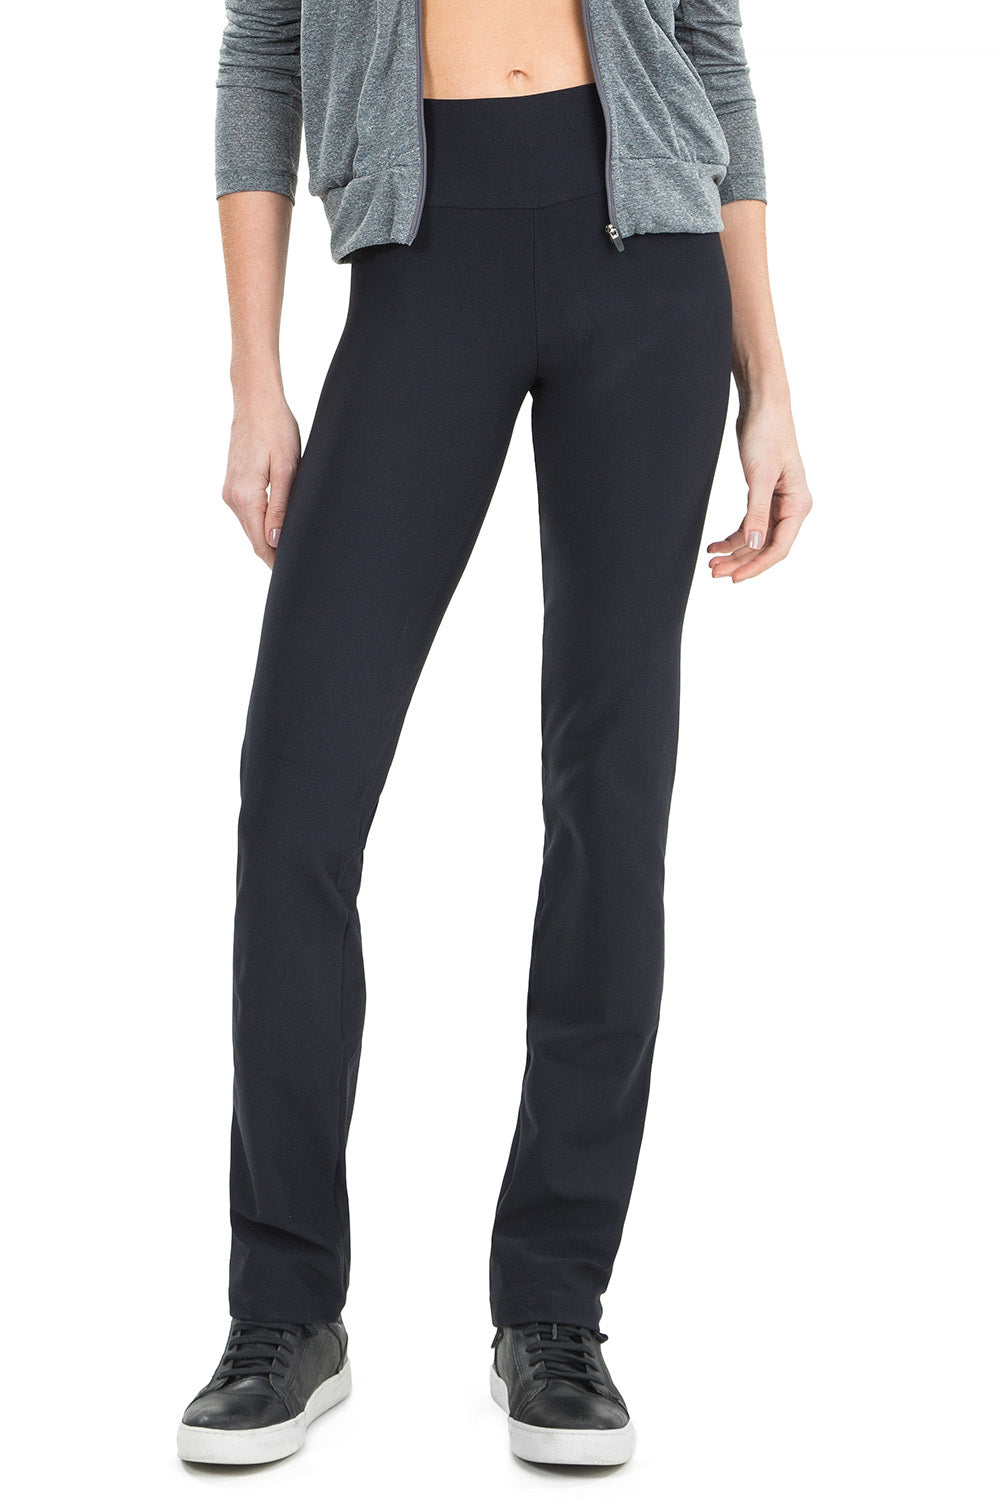 Term Basic Skinny Pants 1